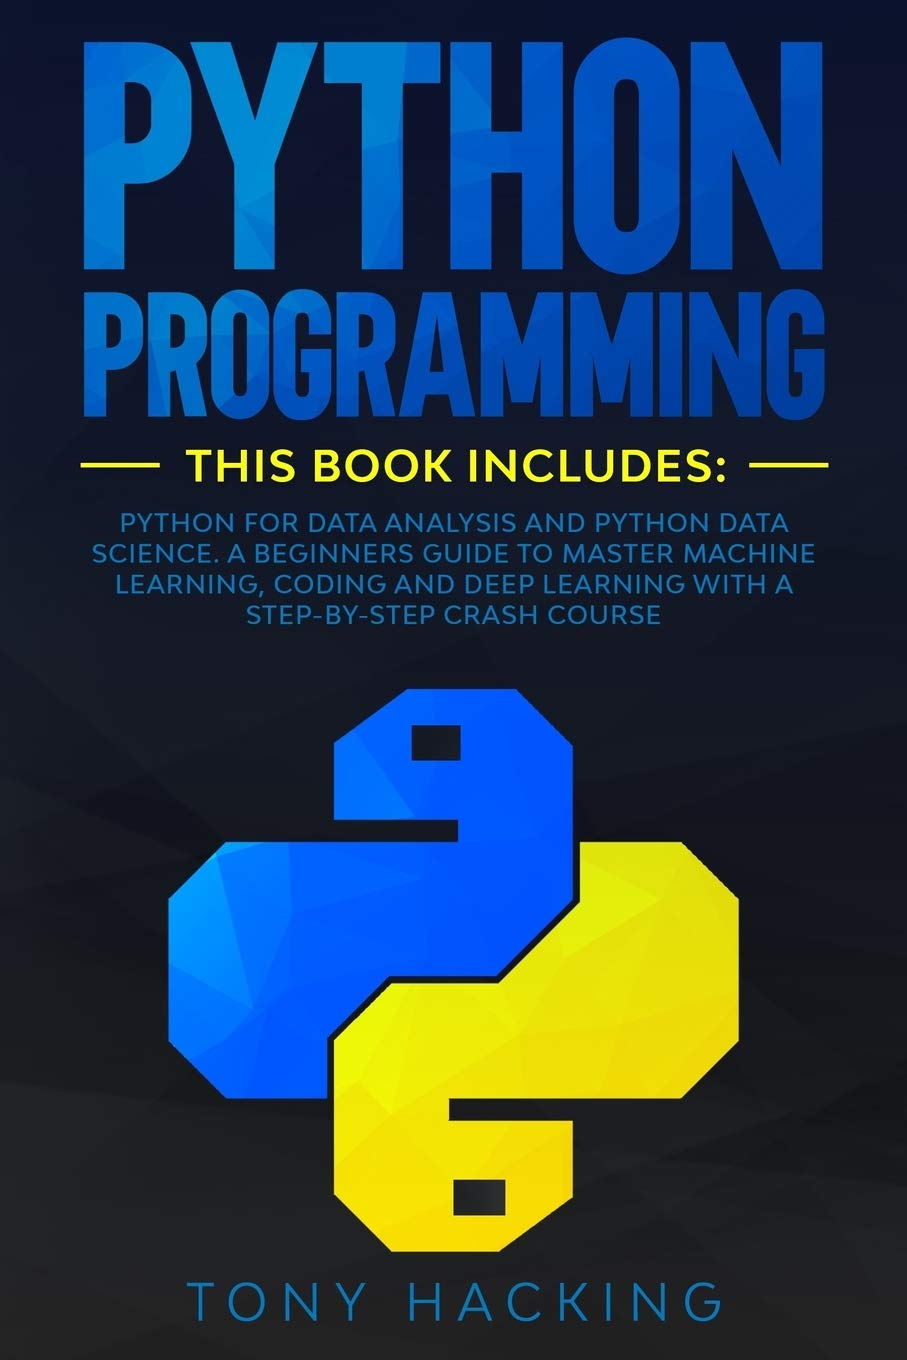 Python Programming: 2 Books in 1: Data Analysis and Data Science. A Beginners Guide to Master Machine Learning, Coding and Deep Learning with a Step-b